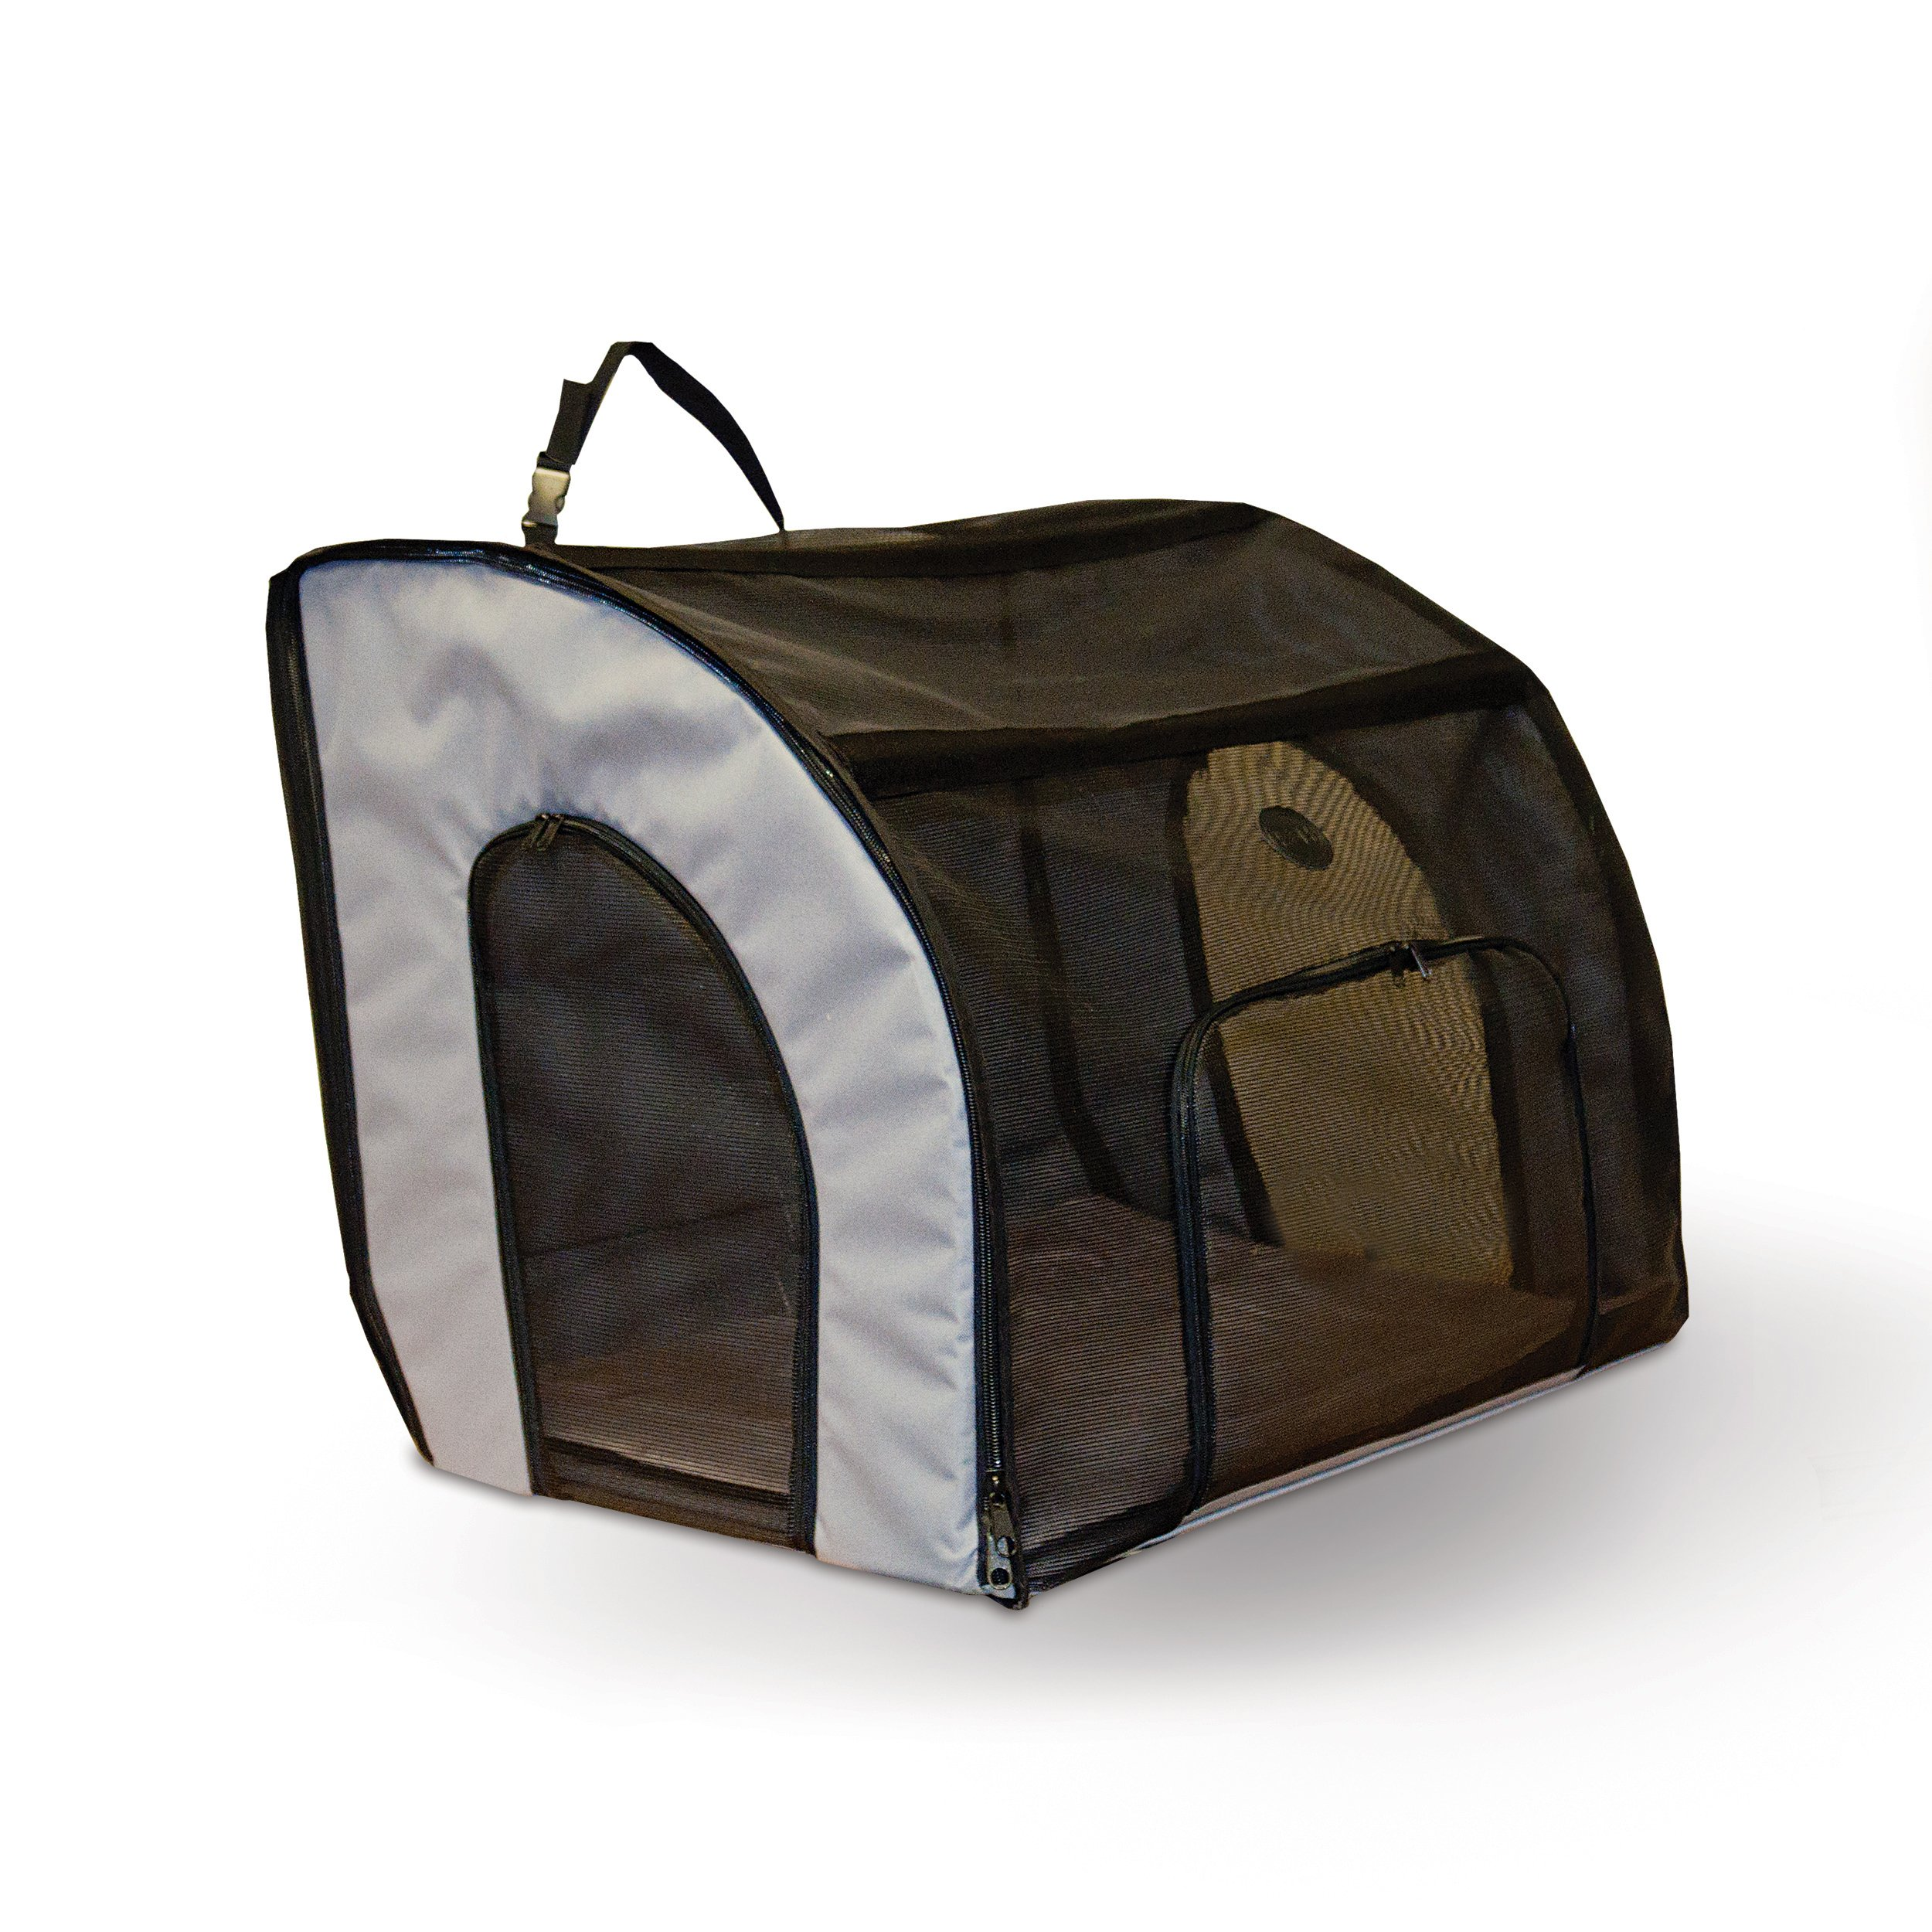 K&H Pet Products Travel Safety Pet Carrier, Gray, Medium by K&H Pet Products